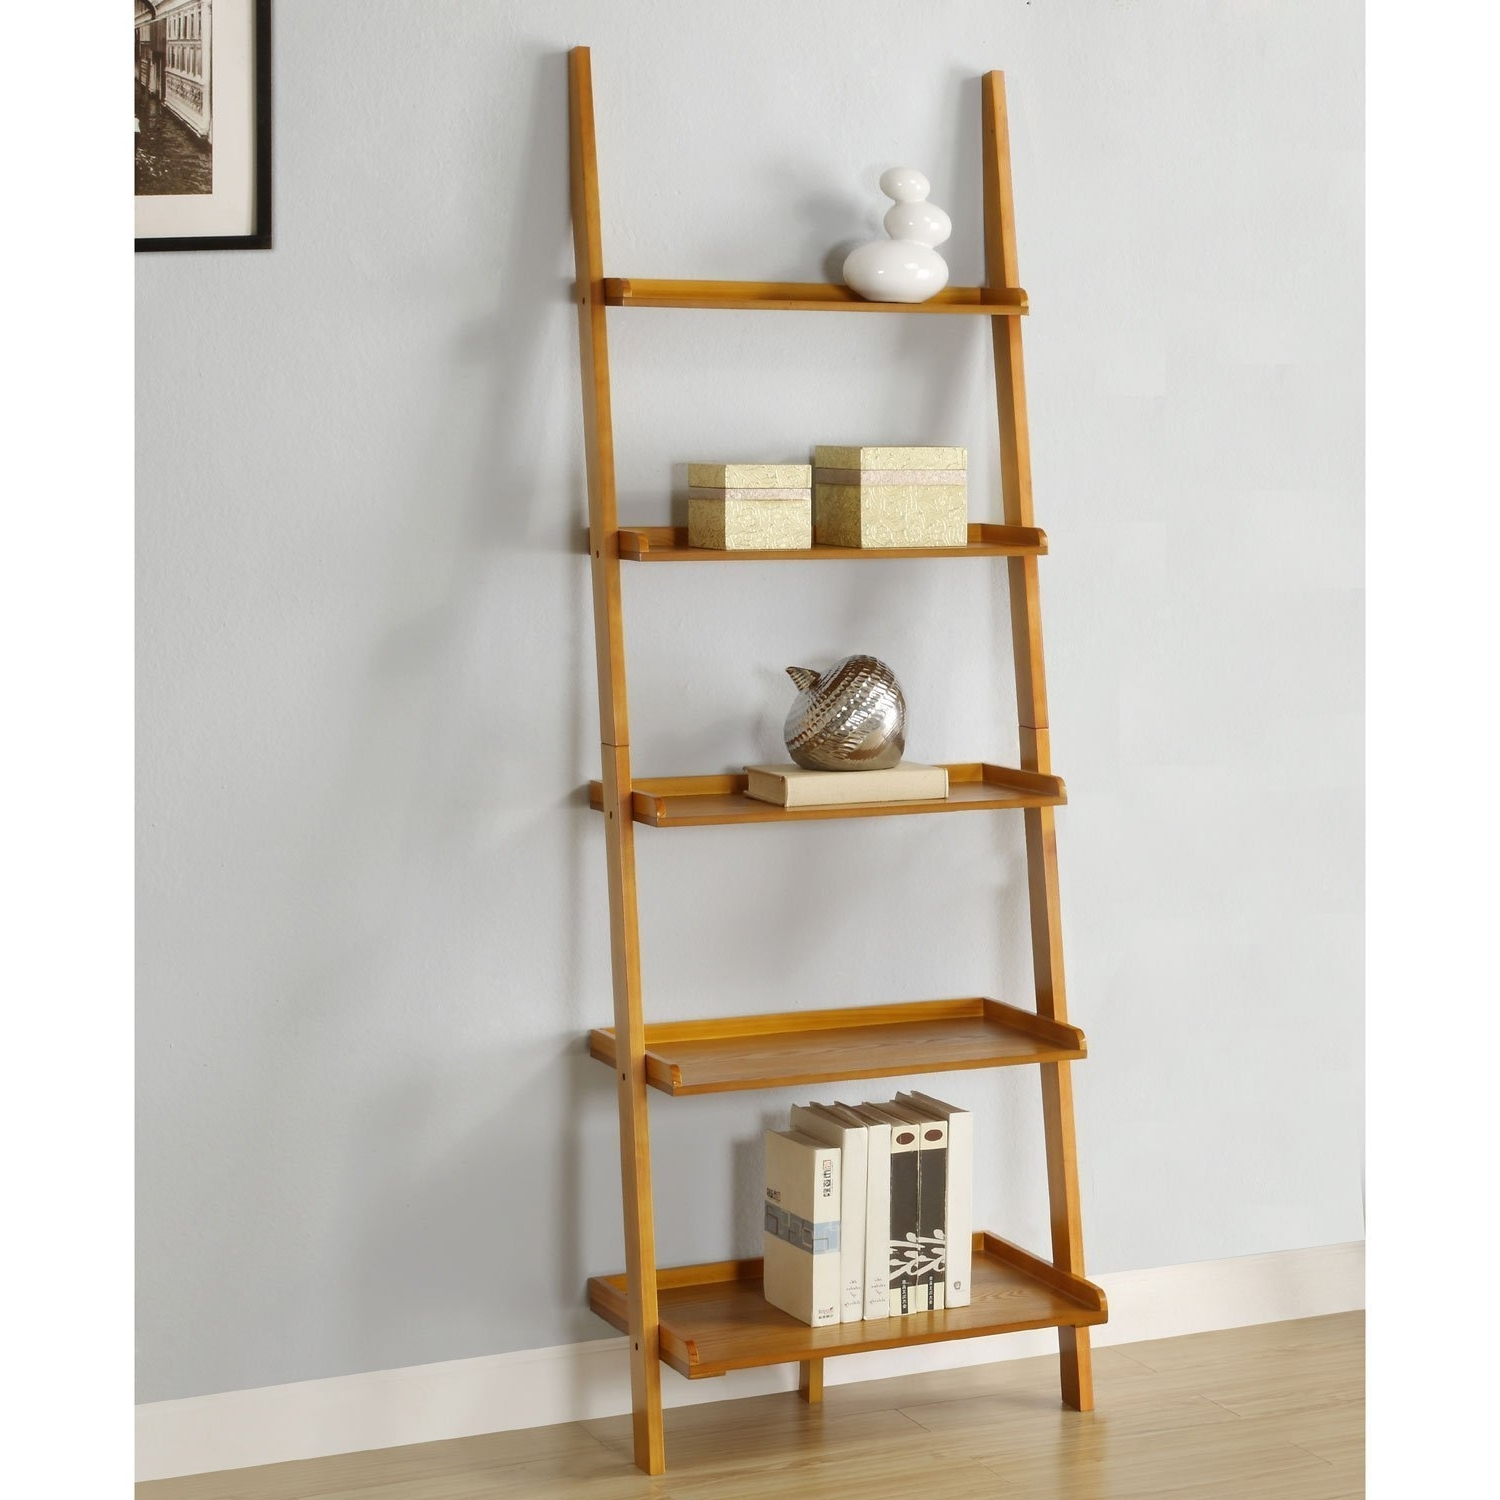 Leaning Bookcases Regarding Latest Amazon: Mintra Oak Finish 5 Tier Ladder Book Shelf: Kitchen (View 4 of 15)